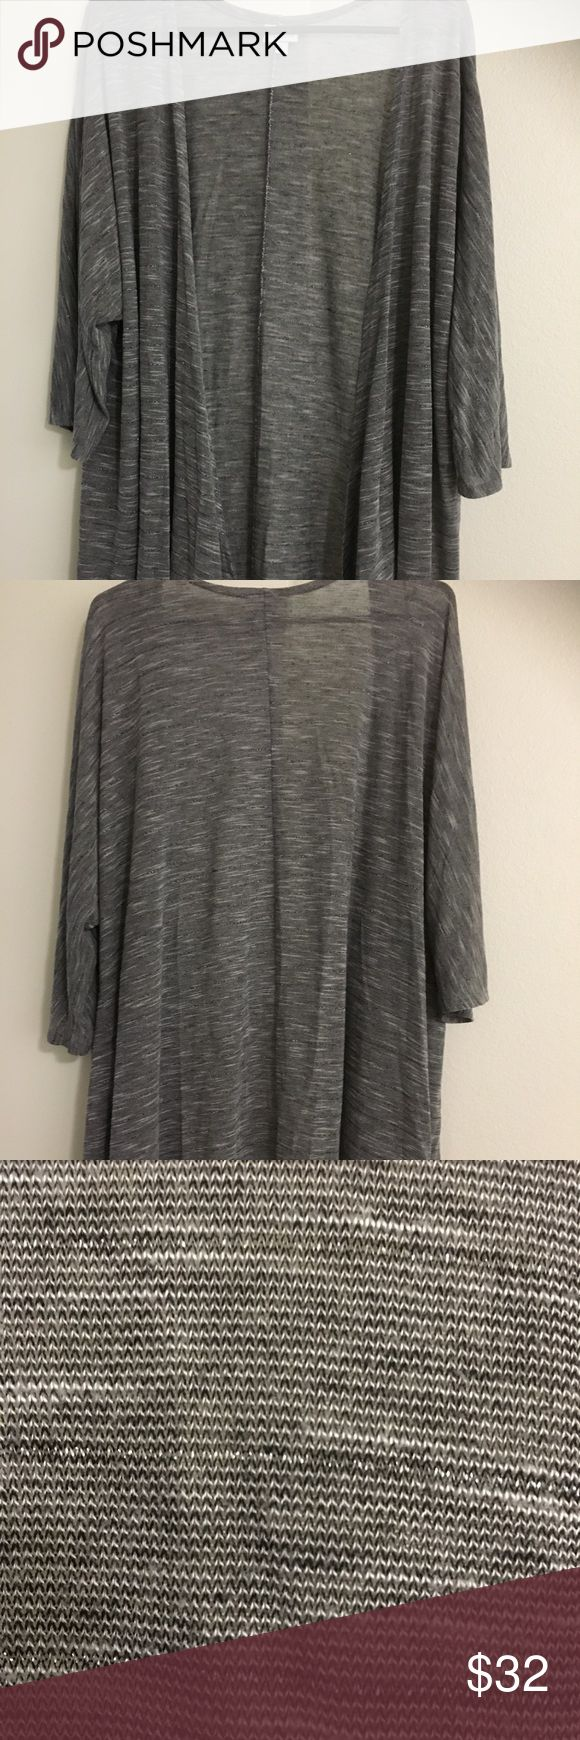 LuLaRoe Lindsay Kimono L Gray/ Black/White LuLaRoe Lindsay Kimono Large fits sizes 18-22 Colors are Gray, Black and White. Lightweight material. Tag has been cut out. In Excellent condition! Very pretty! LuLaRoe Sweaters Cardigans